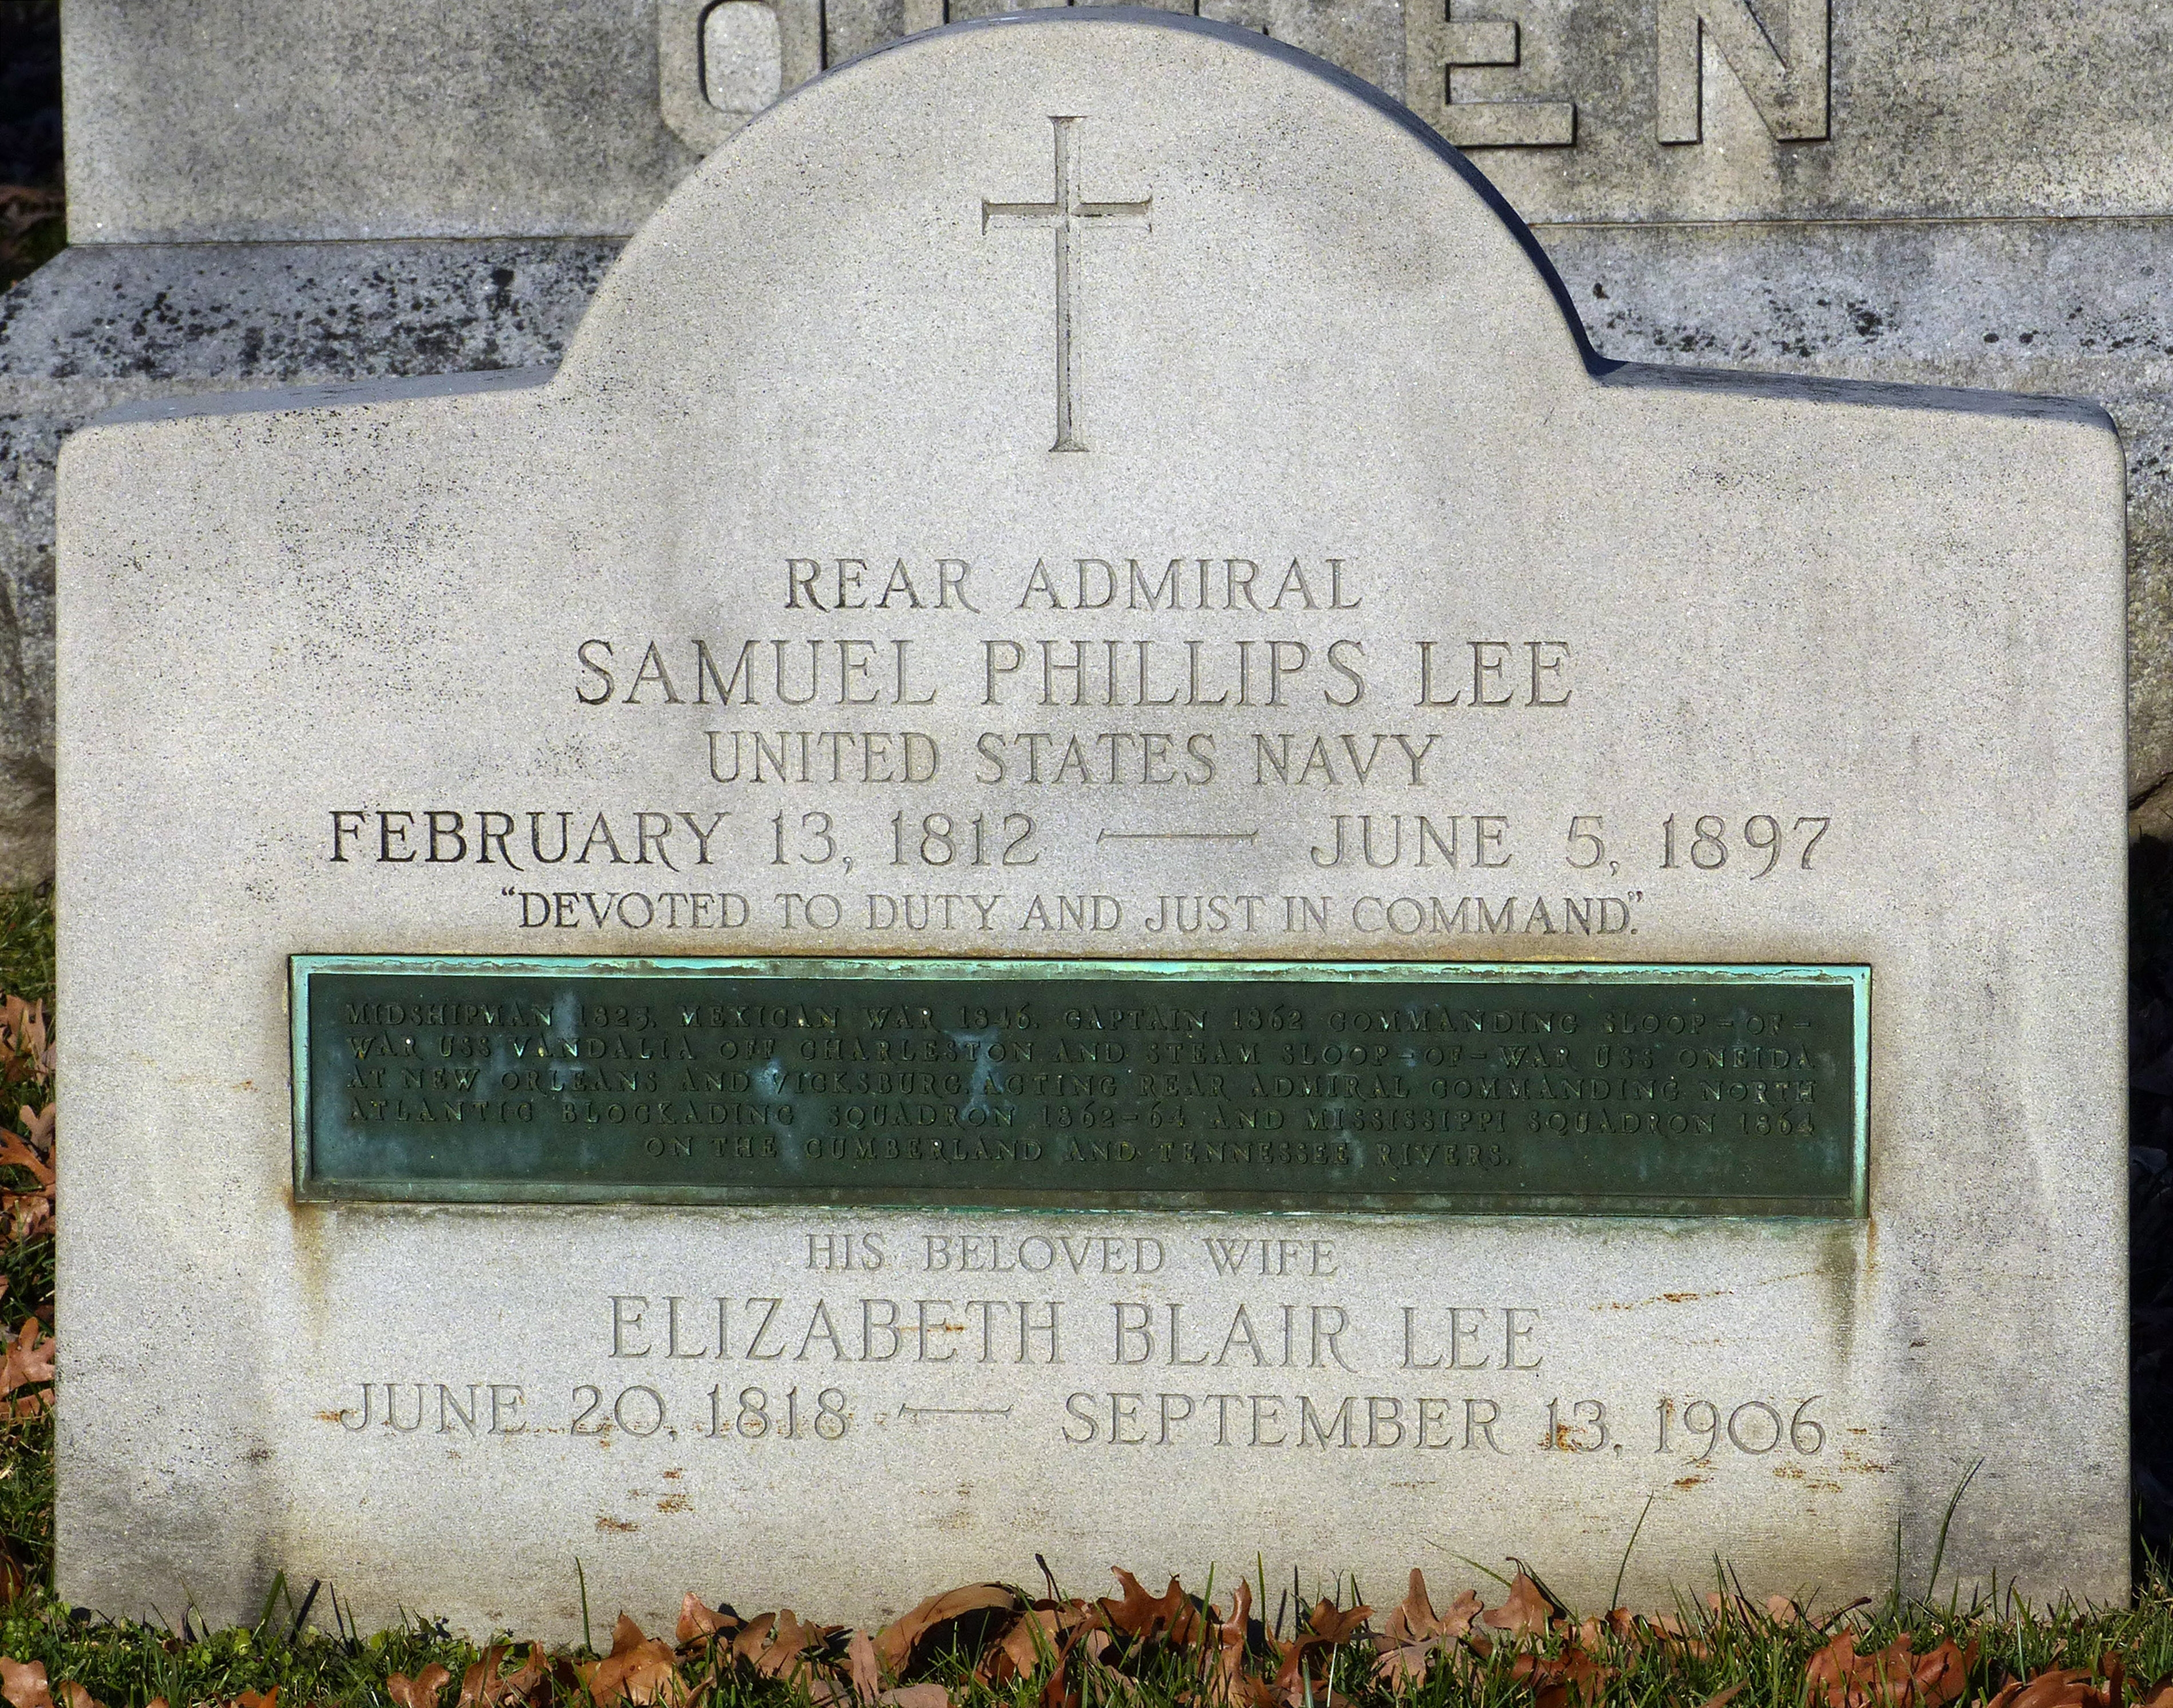 The Grave of R. Adm. Samuel Phillips Lee and Elizabeth Blair Lee in Arlington National Cemetery